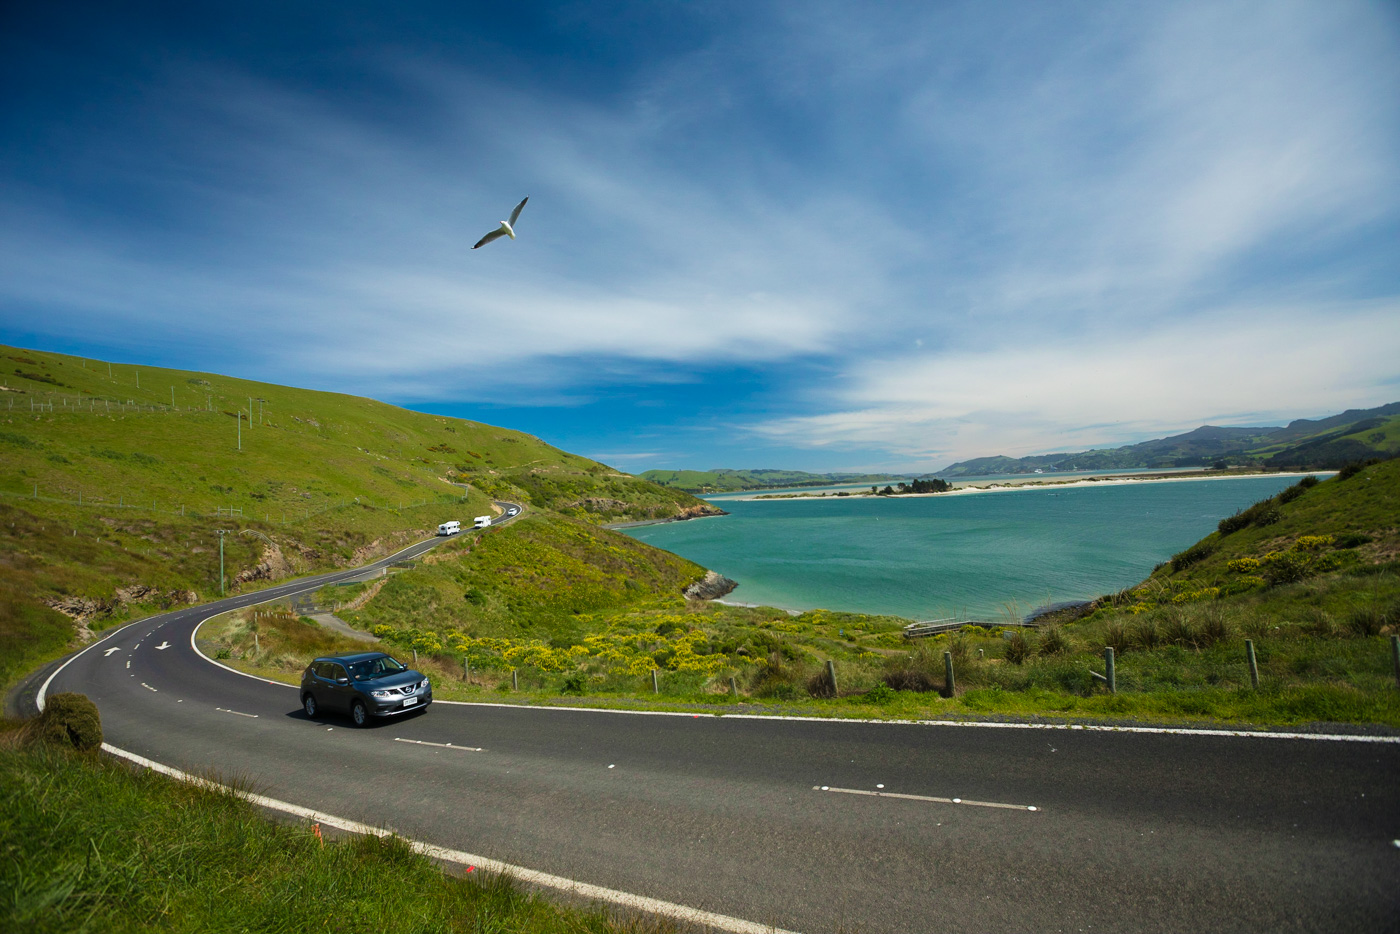 This is pretty much baseline New Zealand. Windy road, green hills, blue water, blue skies and birds